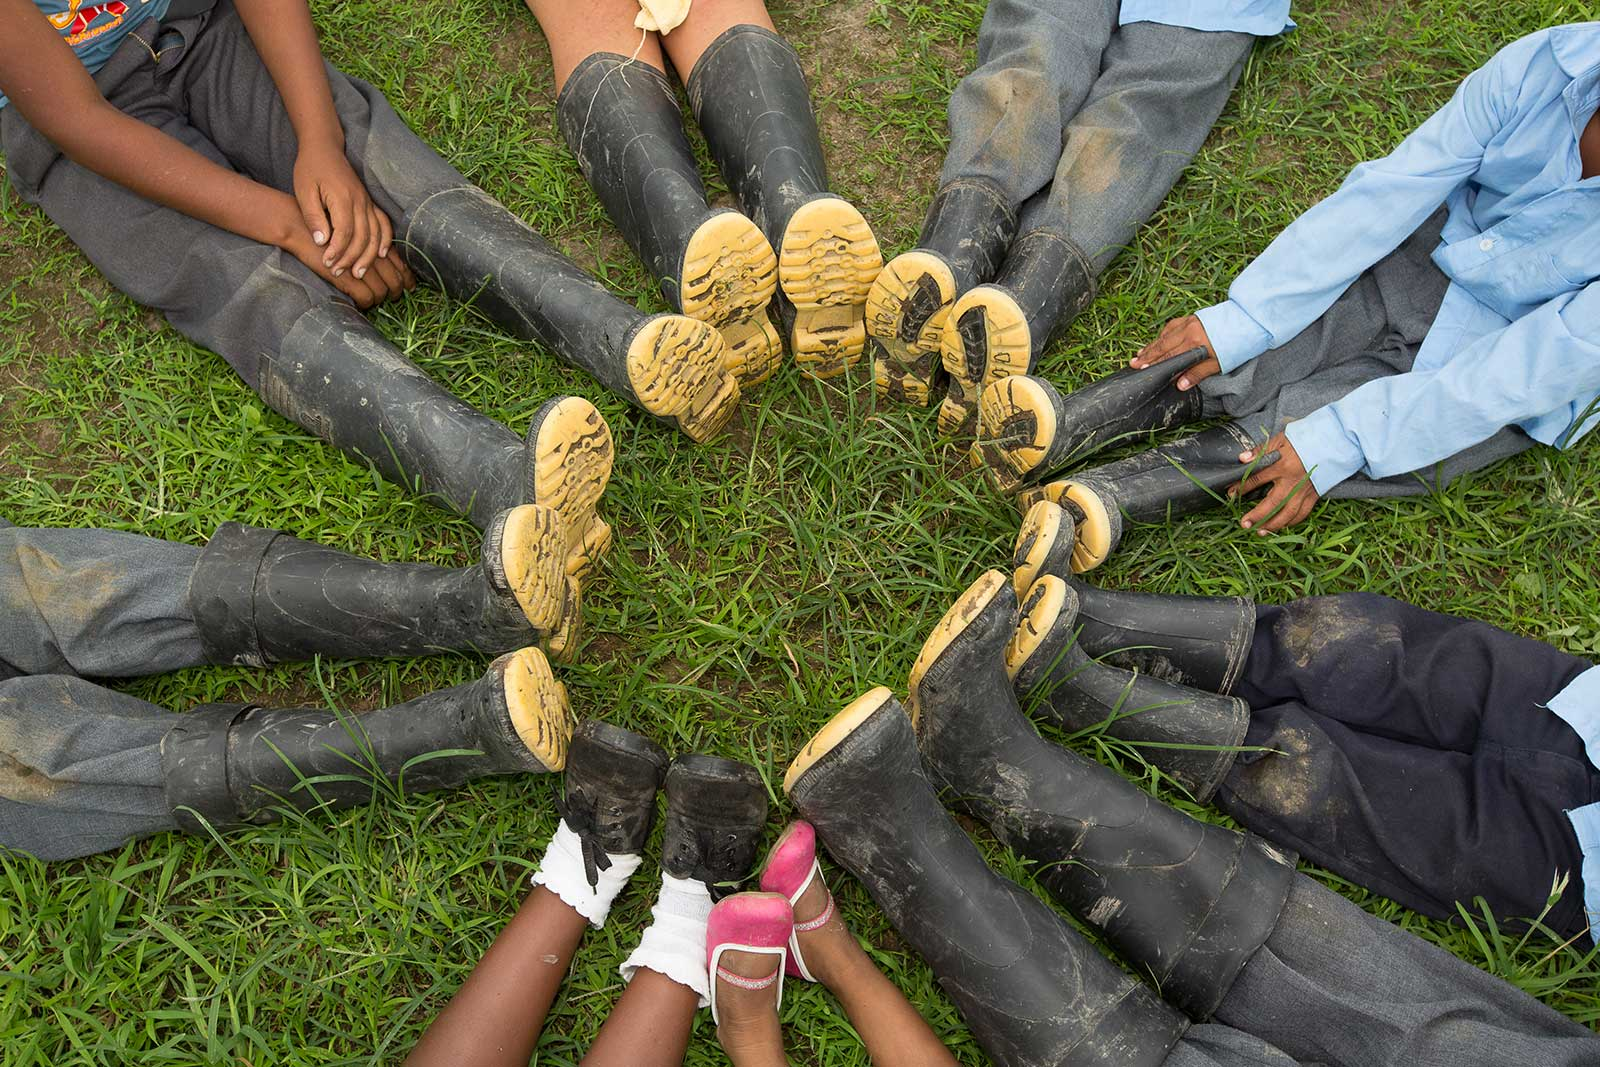 Students wearing work boots sit in a circle with their feet together in the center